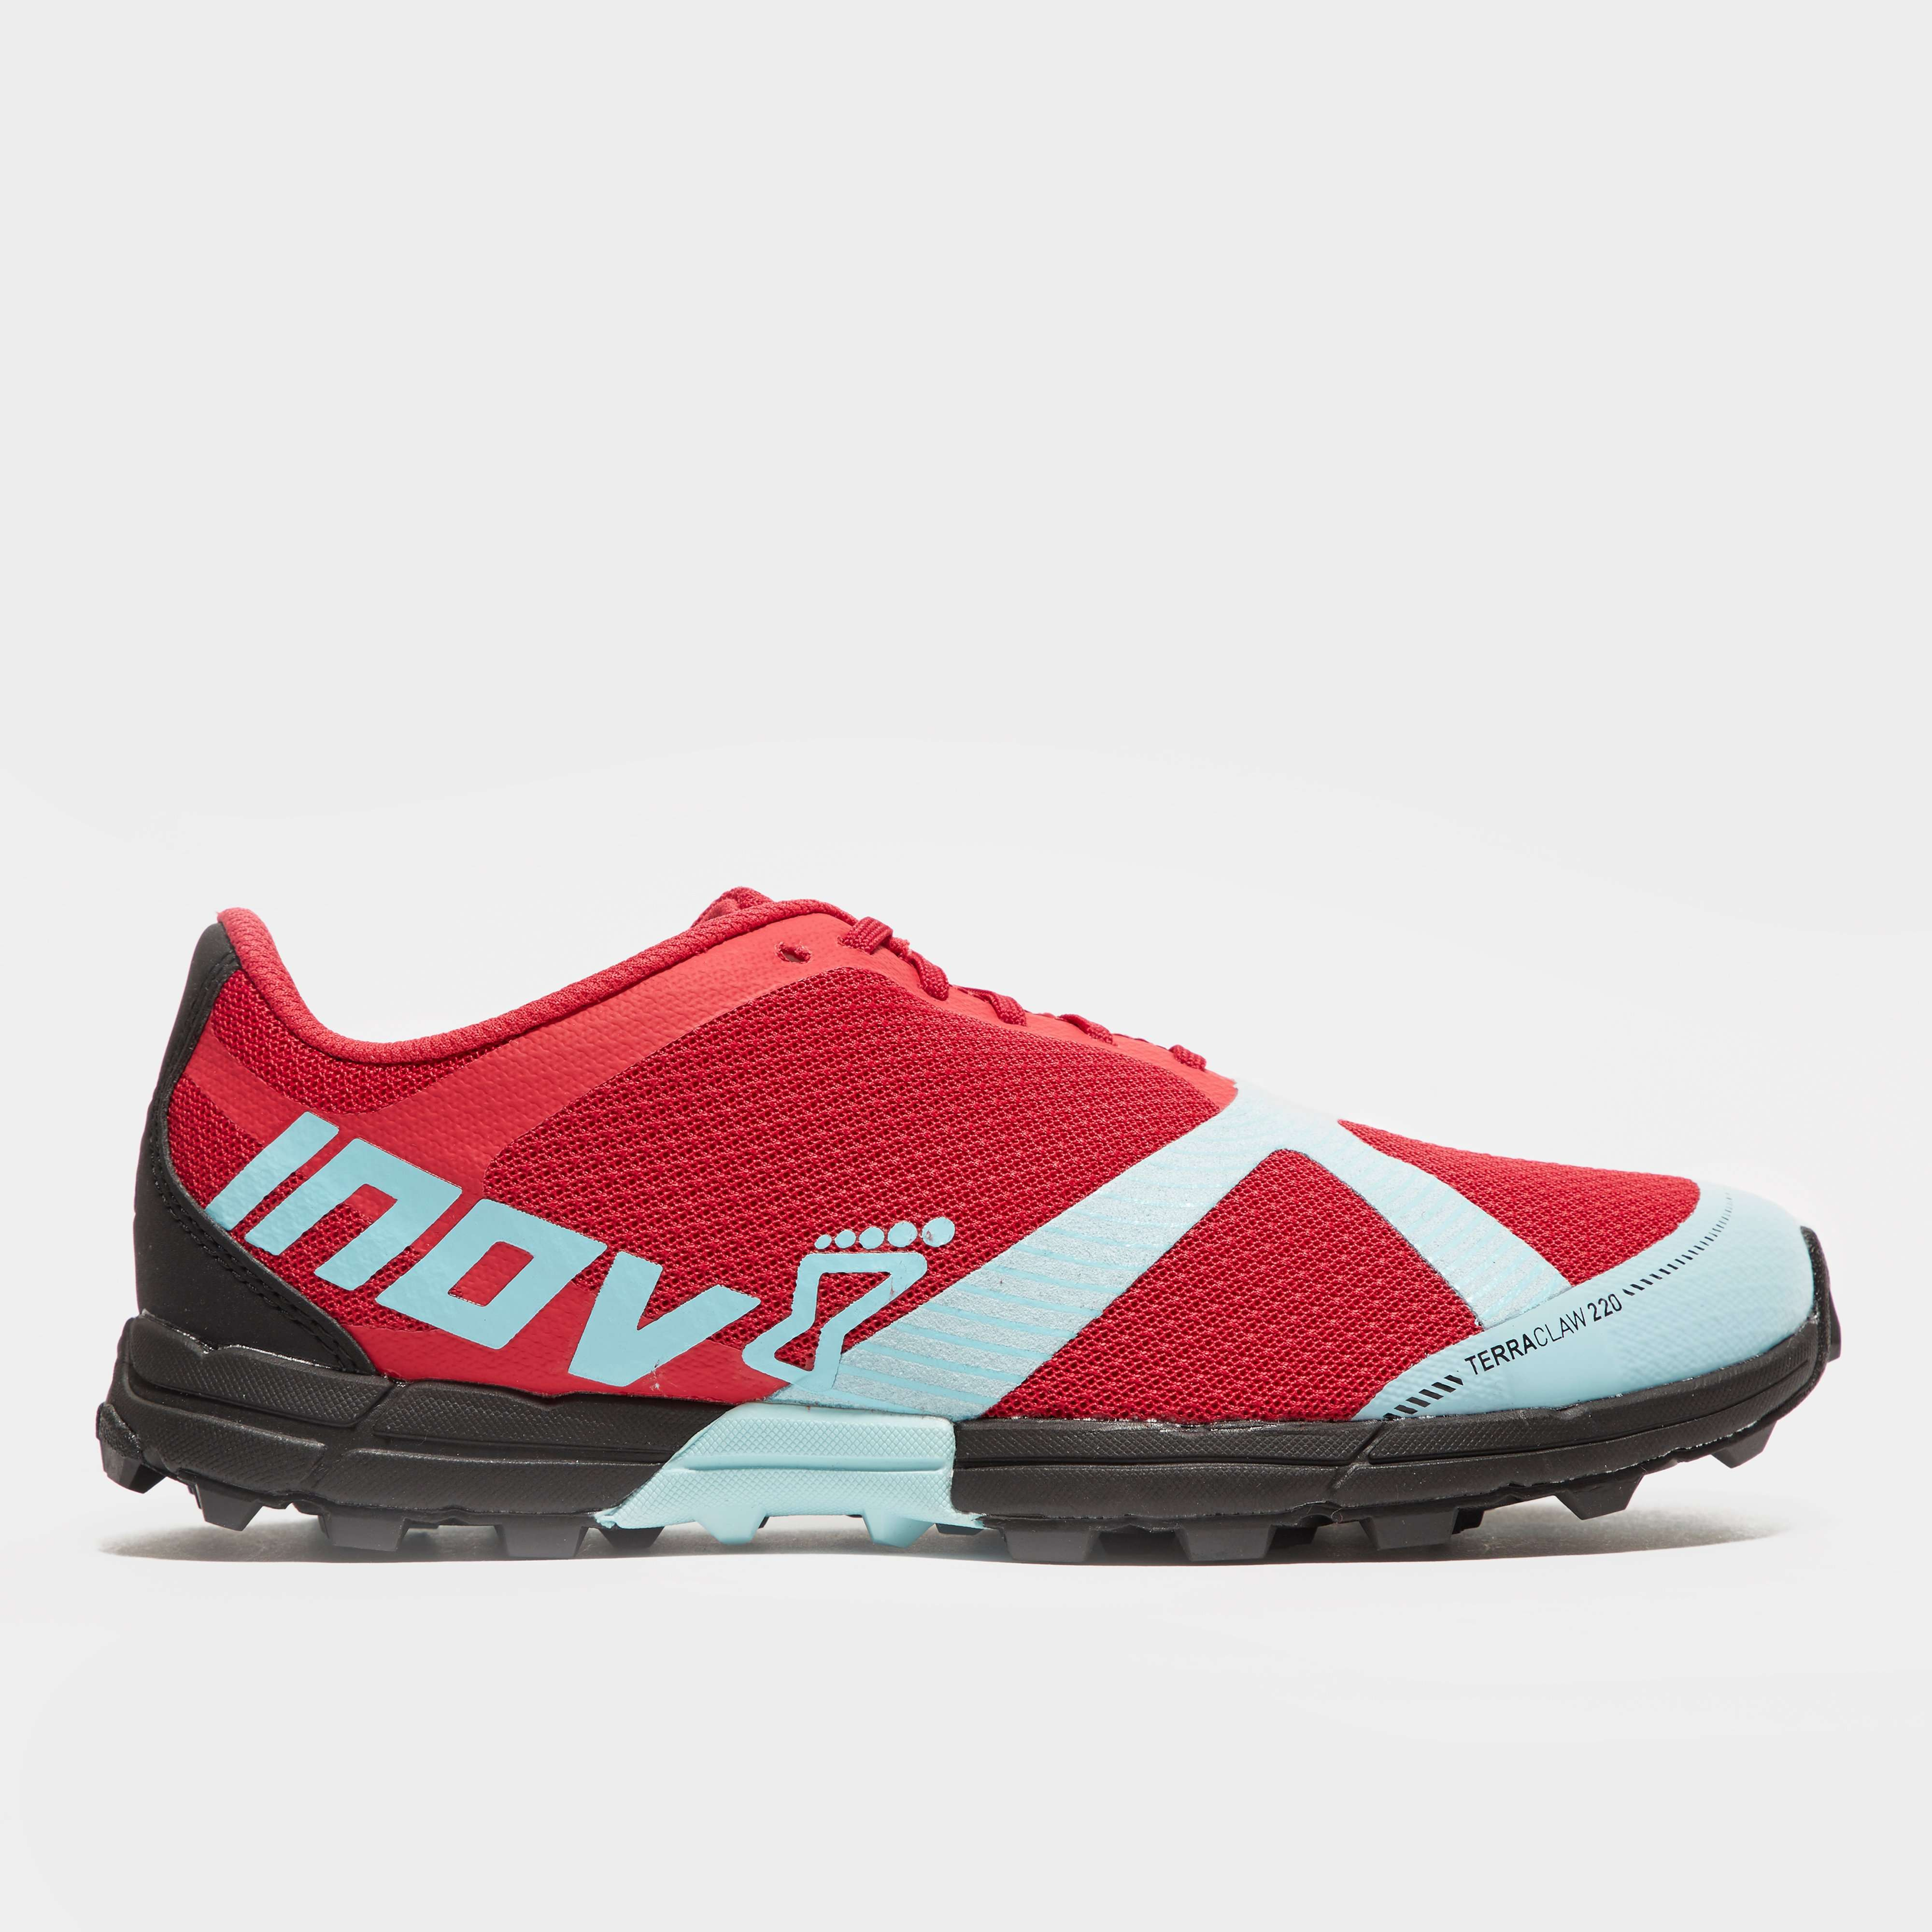 INOV-8 Women's Terraclaw 220 Trail Running Shoes